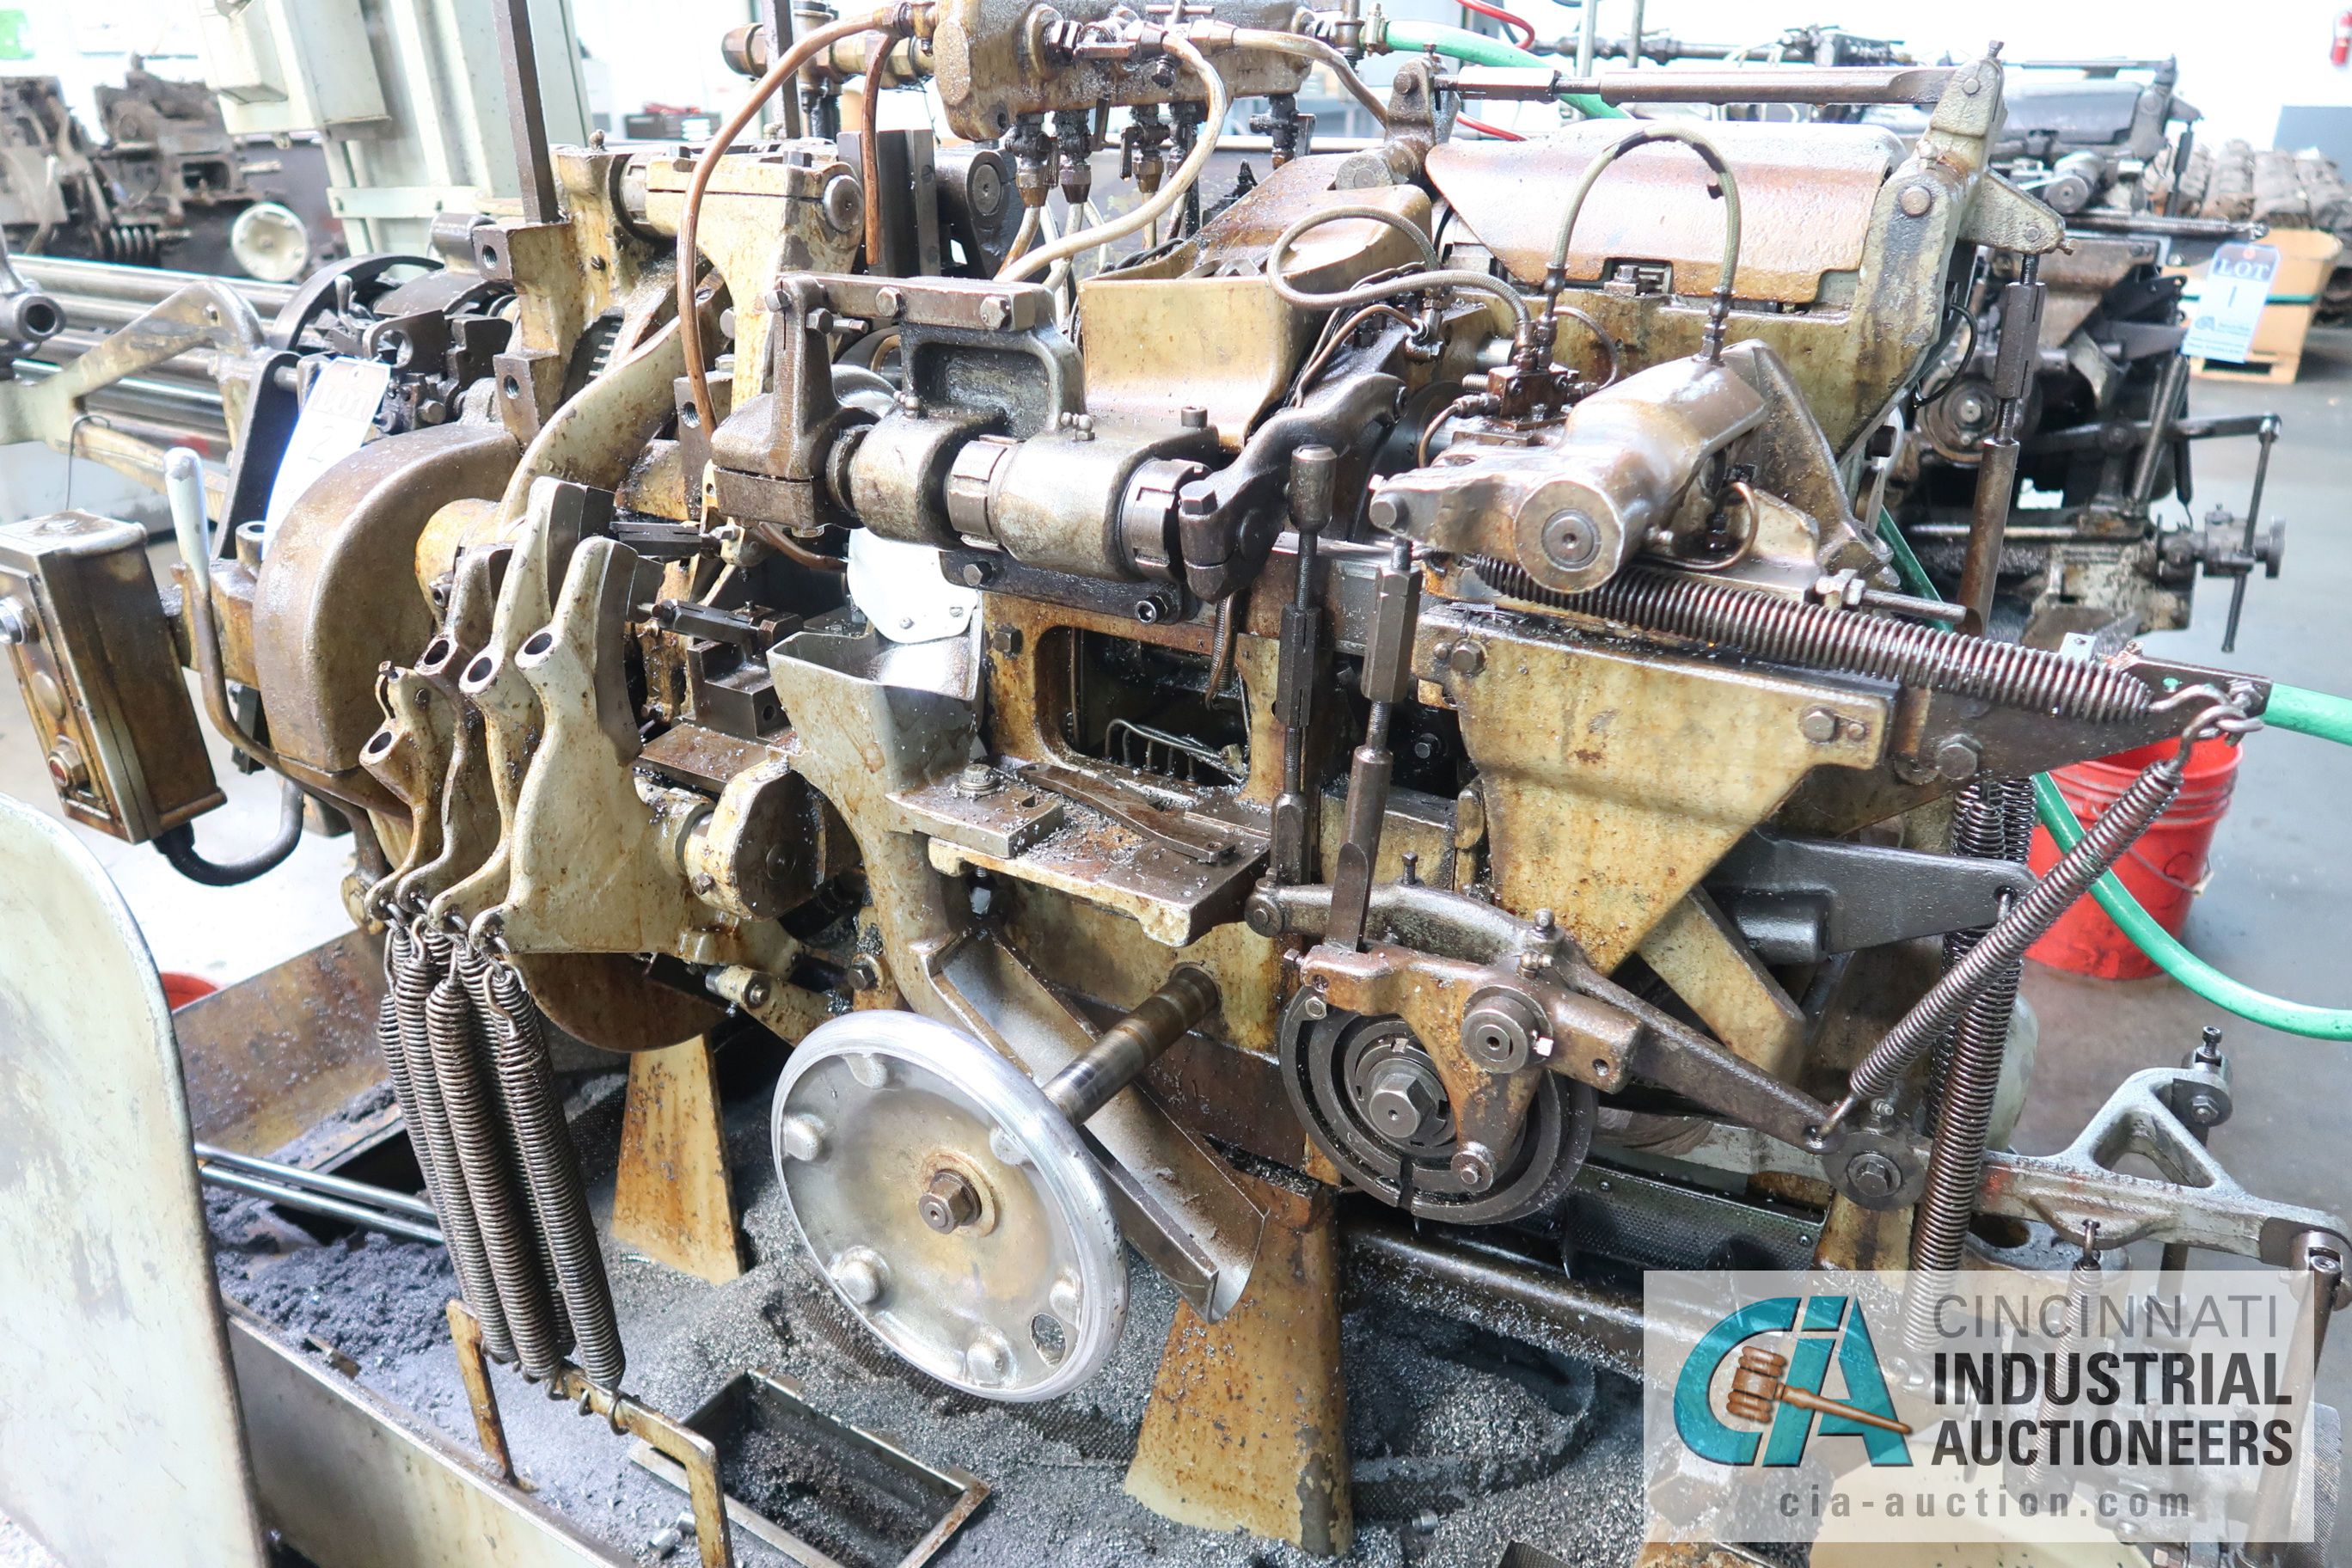 """3/4"""" DAVENPORT 5-SPINDLE SCREW MACHINE; S/N 8077 (NEW 11-1973), WITH THREADING CLUTCH, PICK OFF, - Image 2 of 4"""